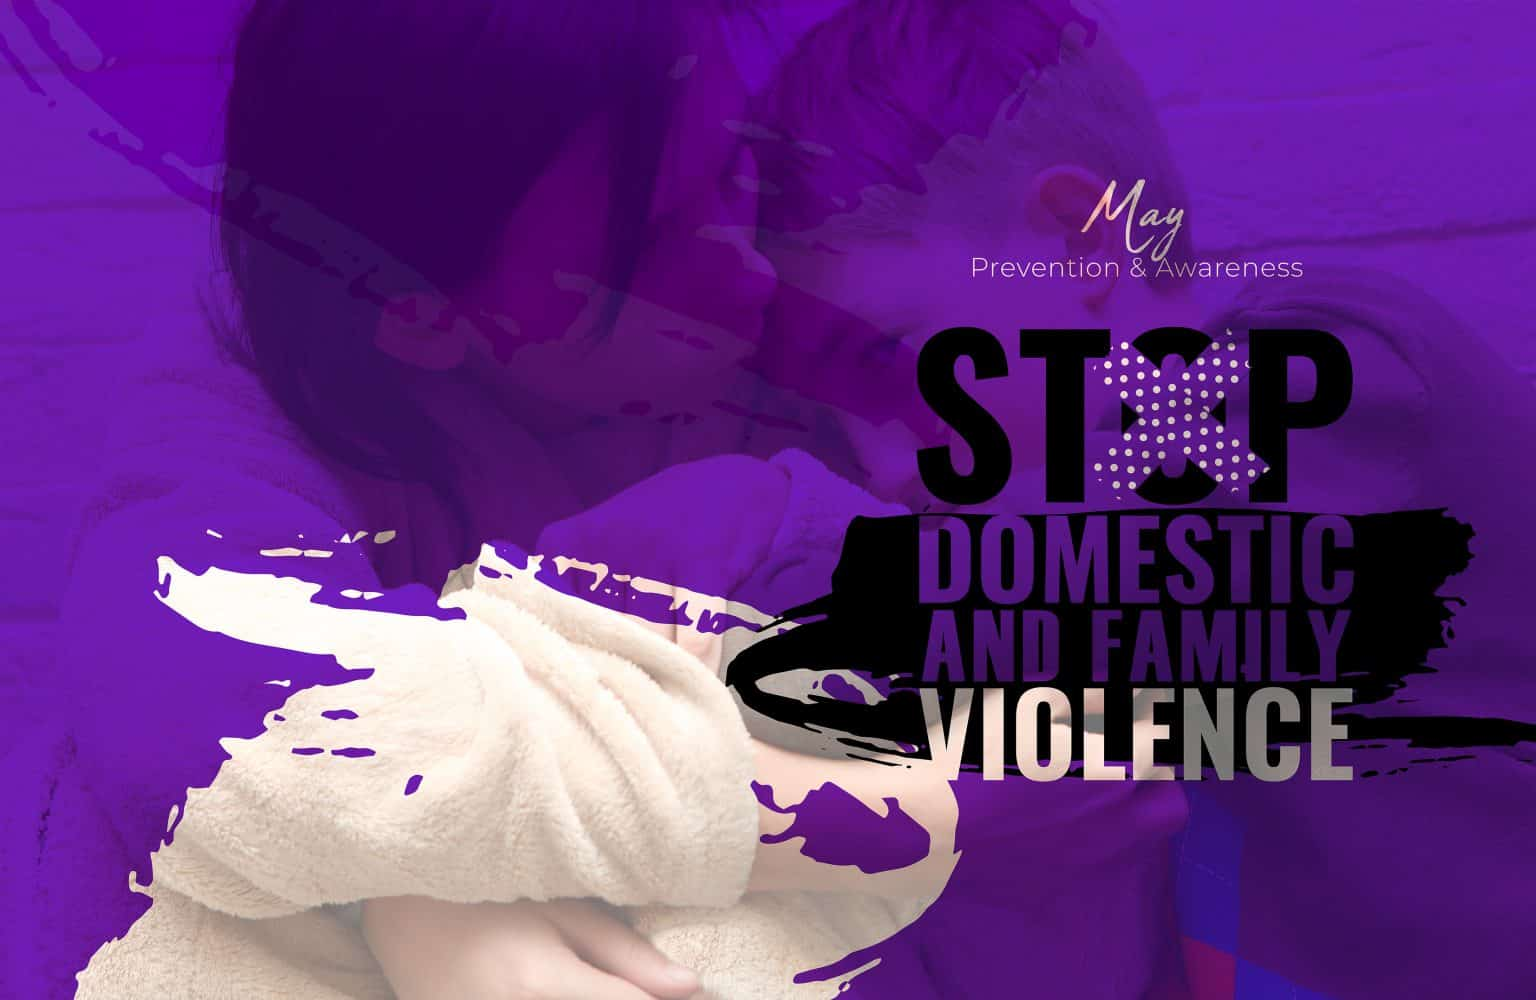 domestic and family violence prevention month - may 2021